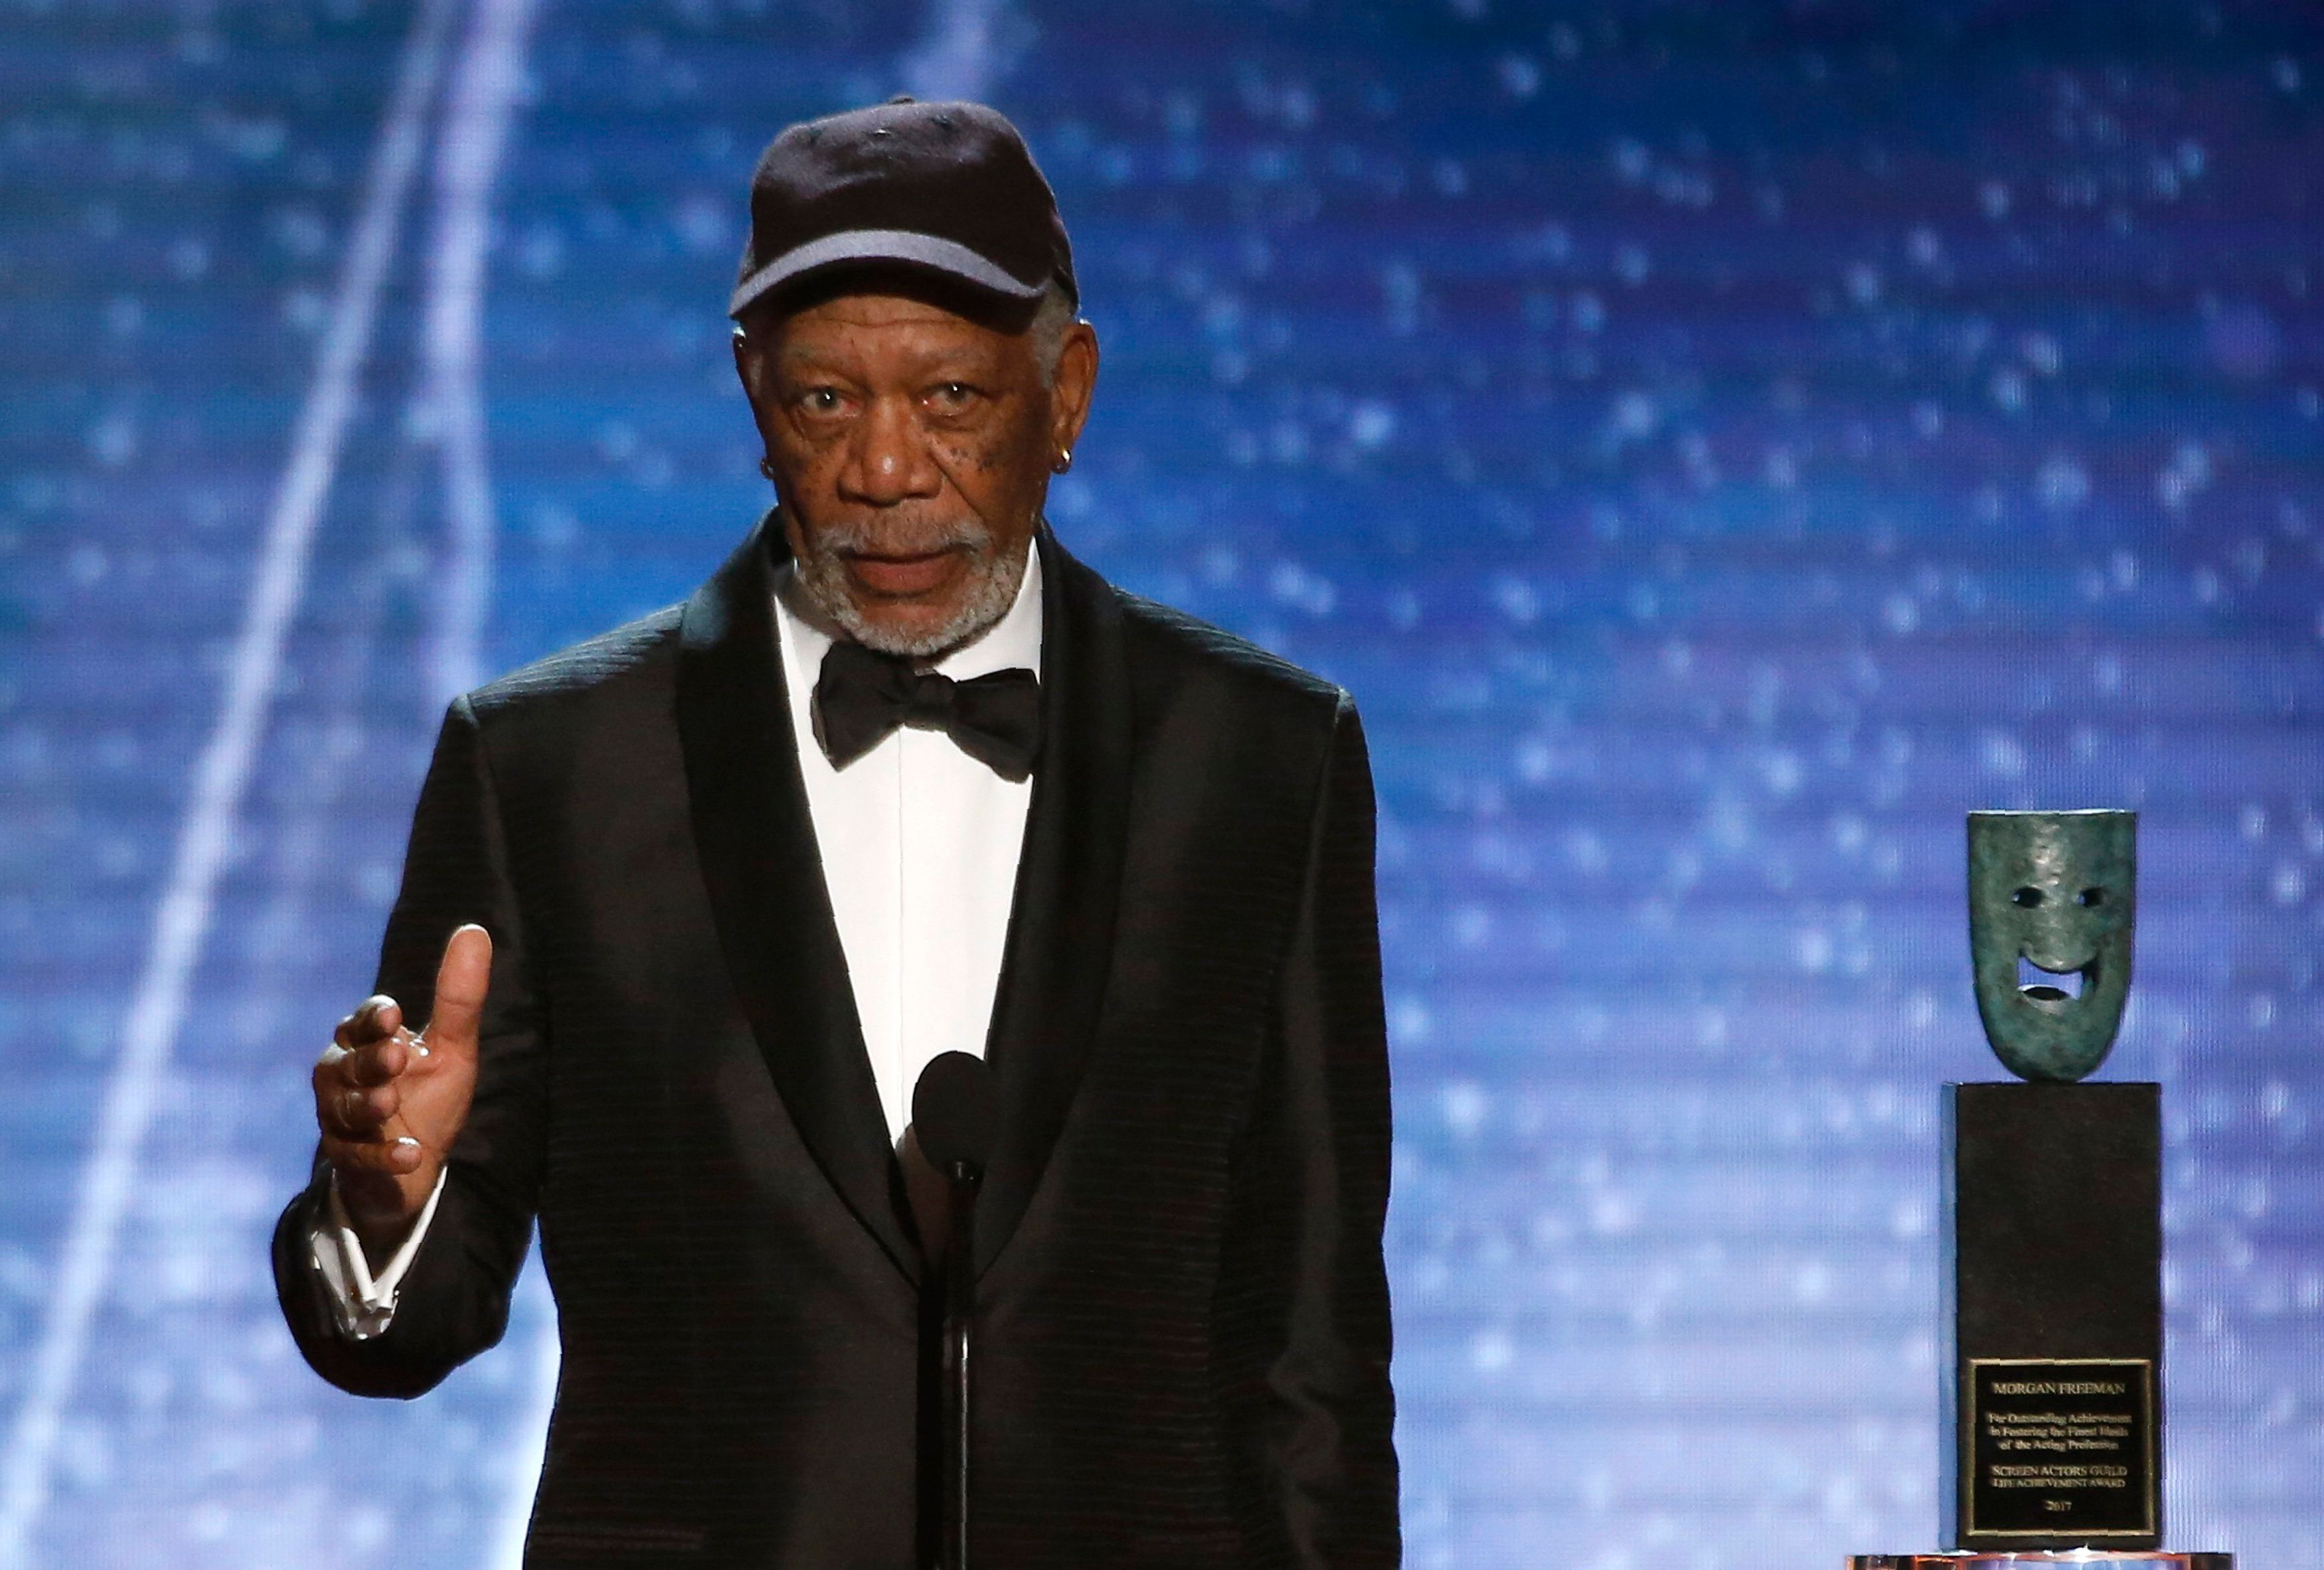 24th Screen Actors Guild Awards – Show – Los Angeles, California, U.S., 21/01/2018 – Actor Morgan Freeman accepts the Life Achievement Award. REUTERS/Mario Anzuoni